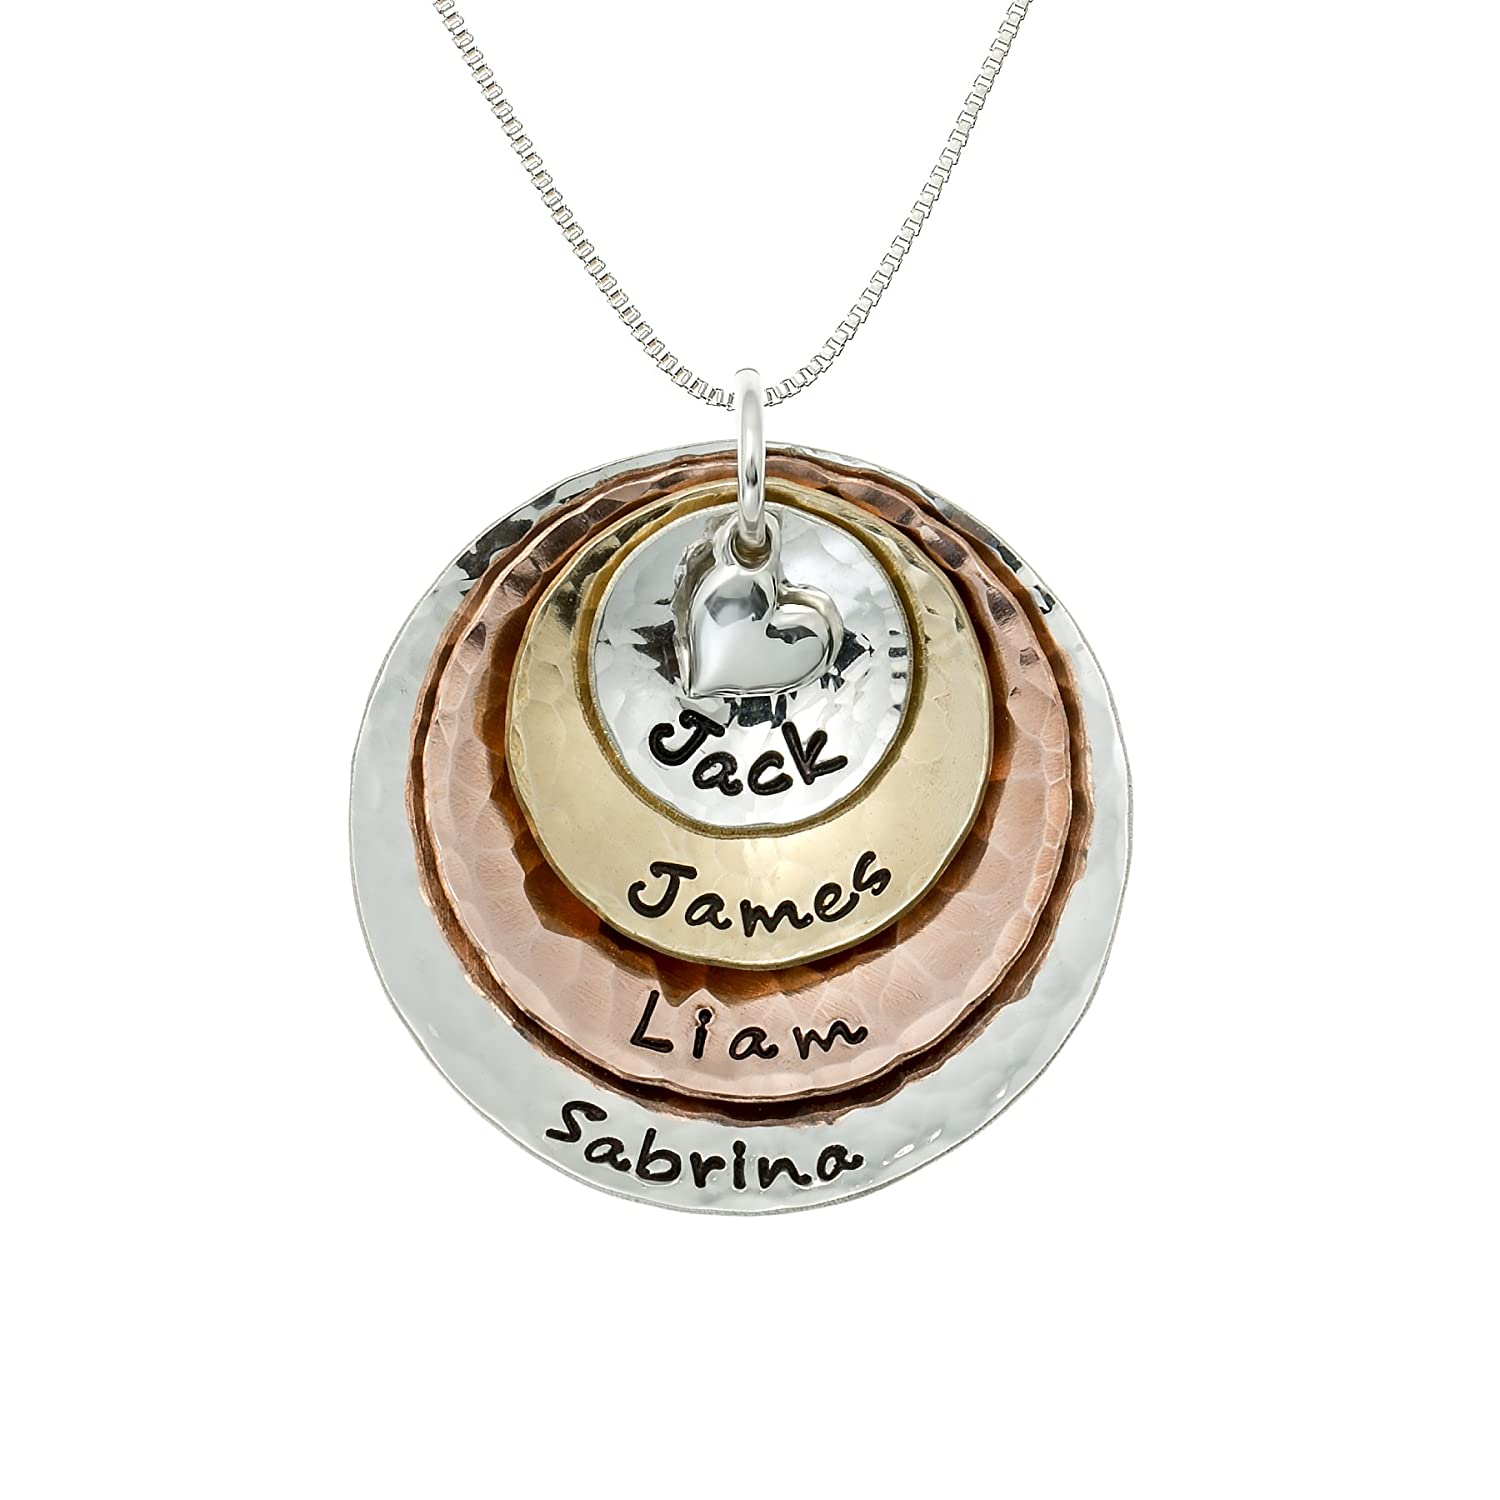 AJ's Collection My Four Treasures Personalized Necklace with 4 Customizable Discs in Sterling Silver, 14k Gold Plate and Rose Gold...